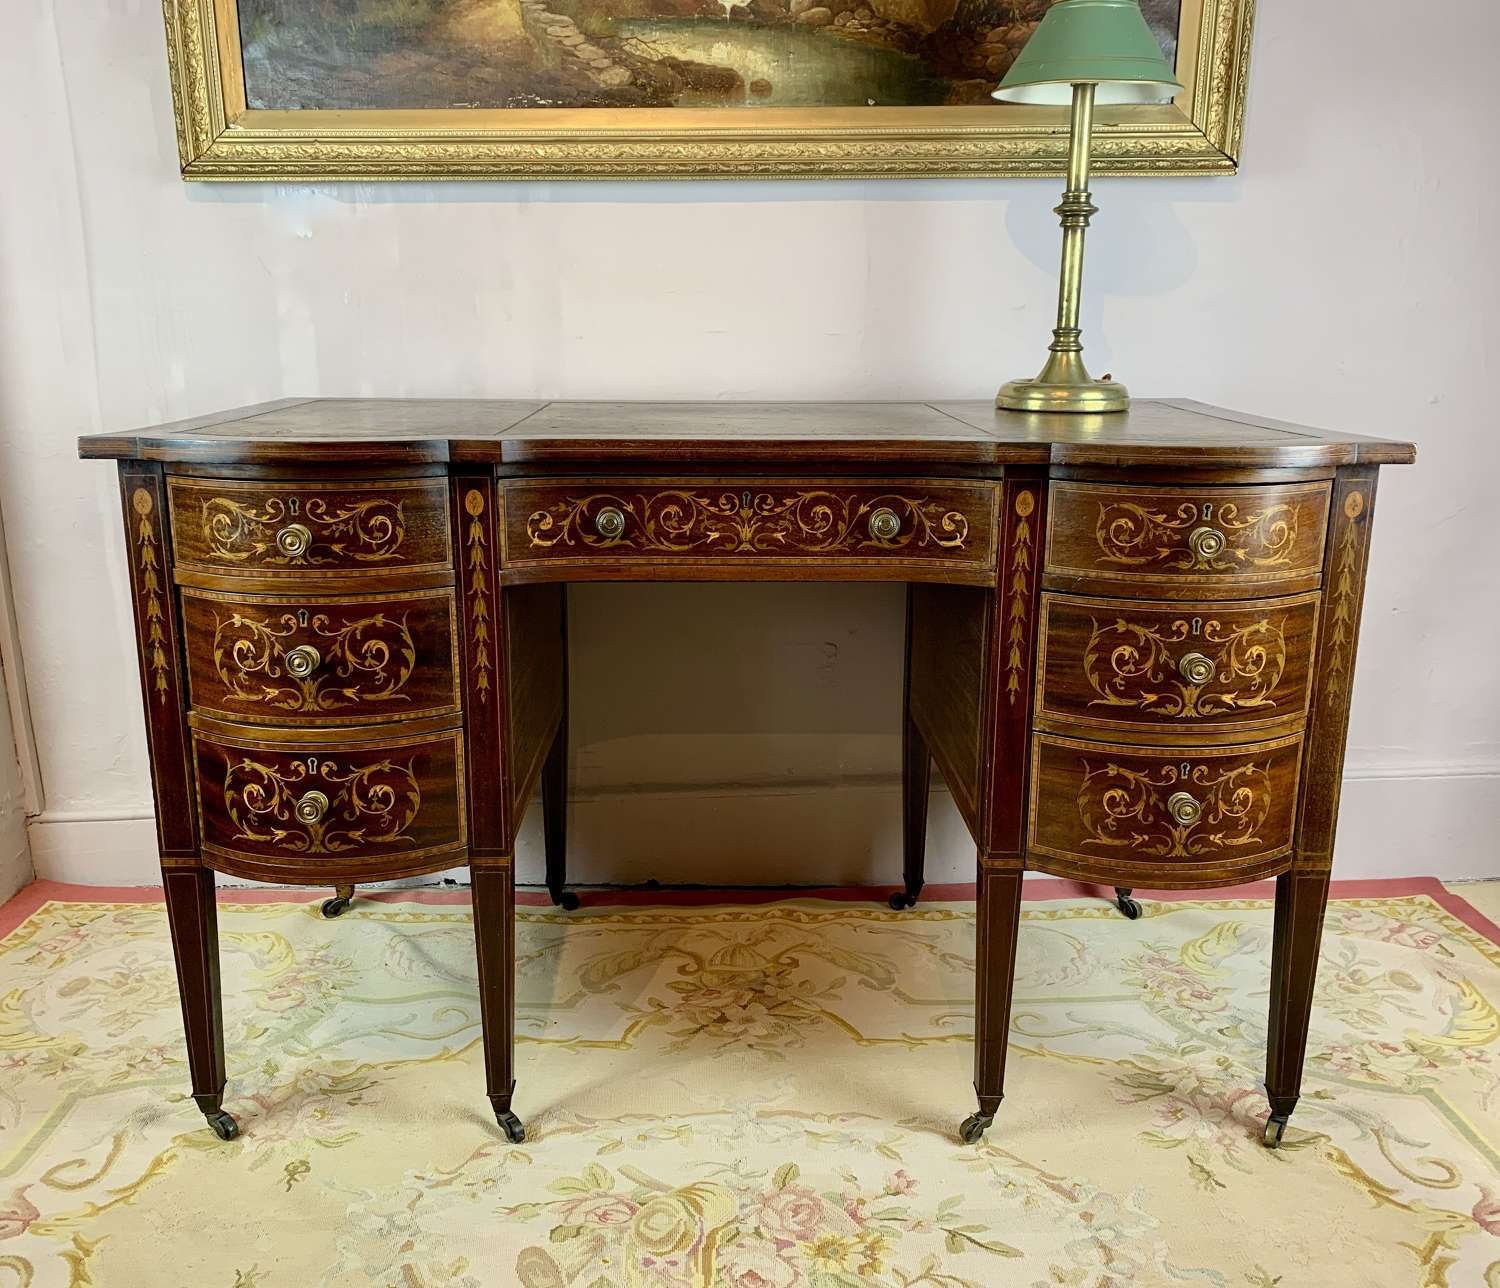 An Inlaid Mahogany Twin Pedestal Desk, circa 1900